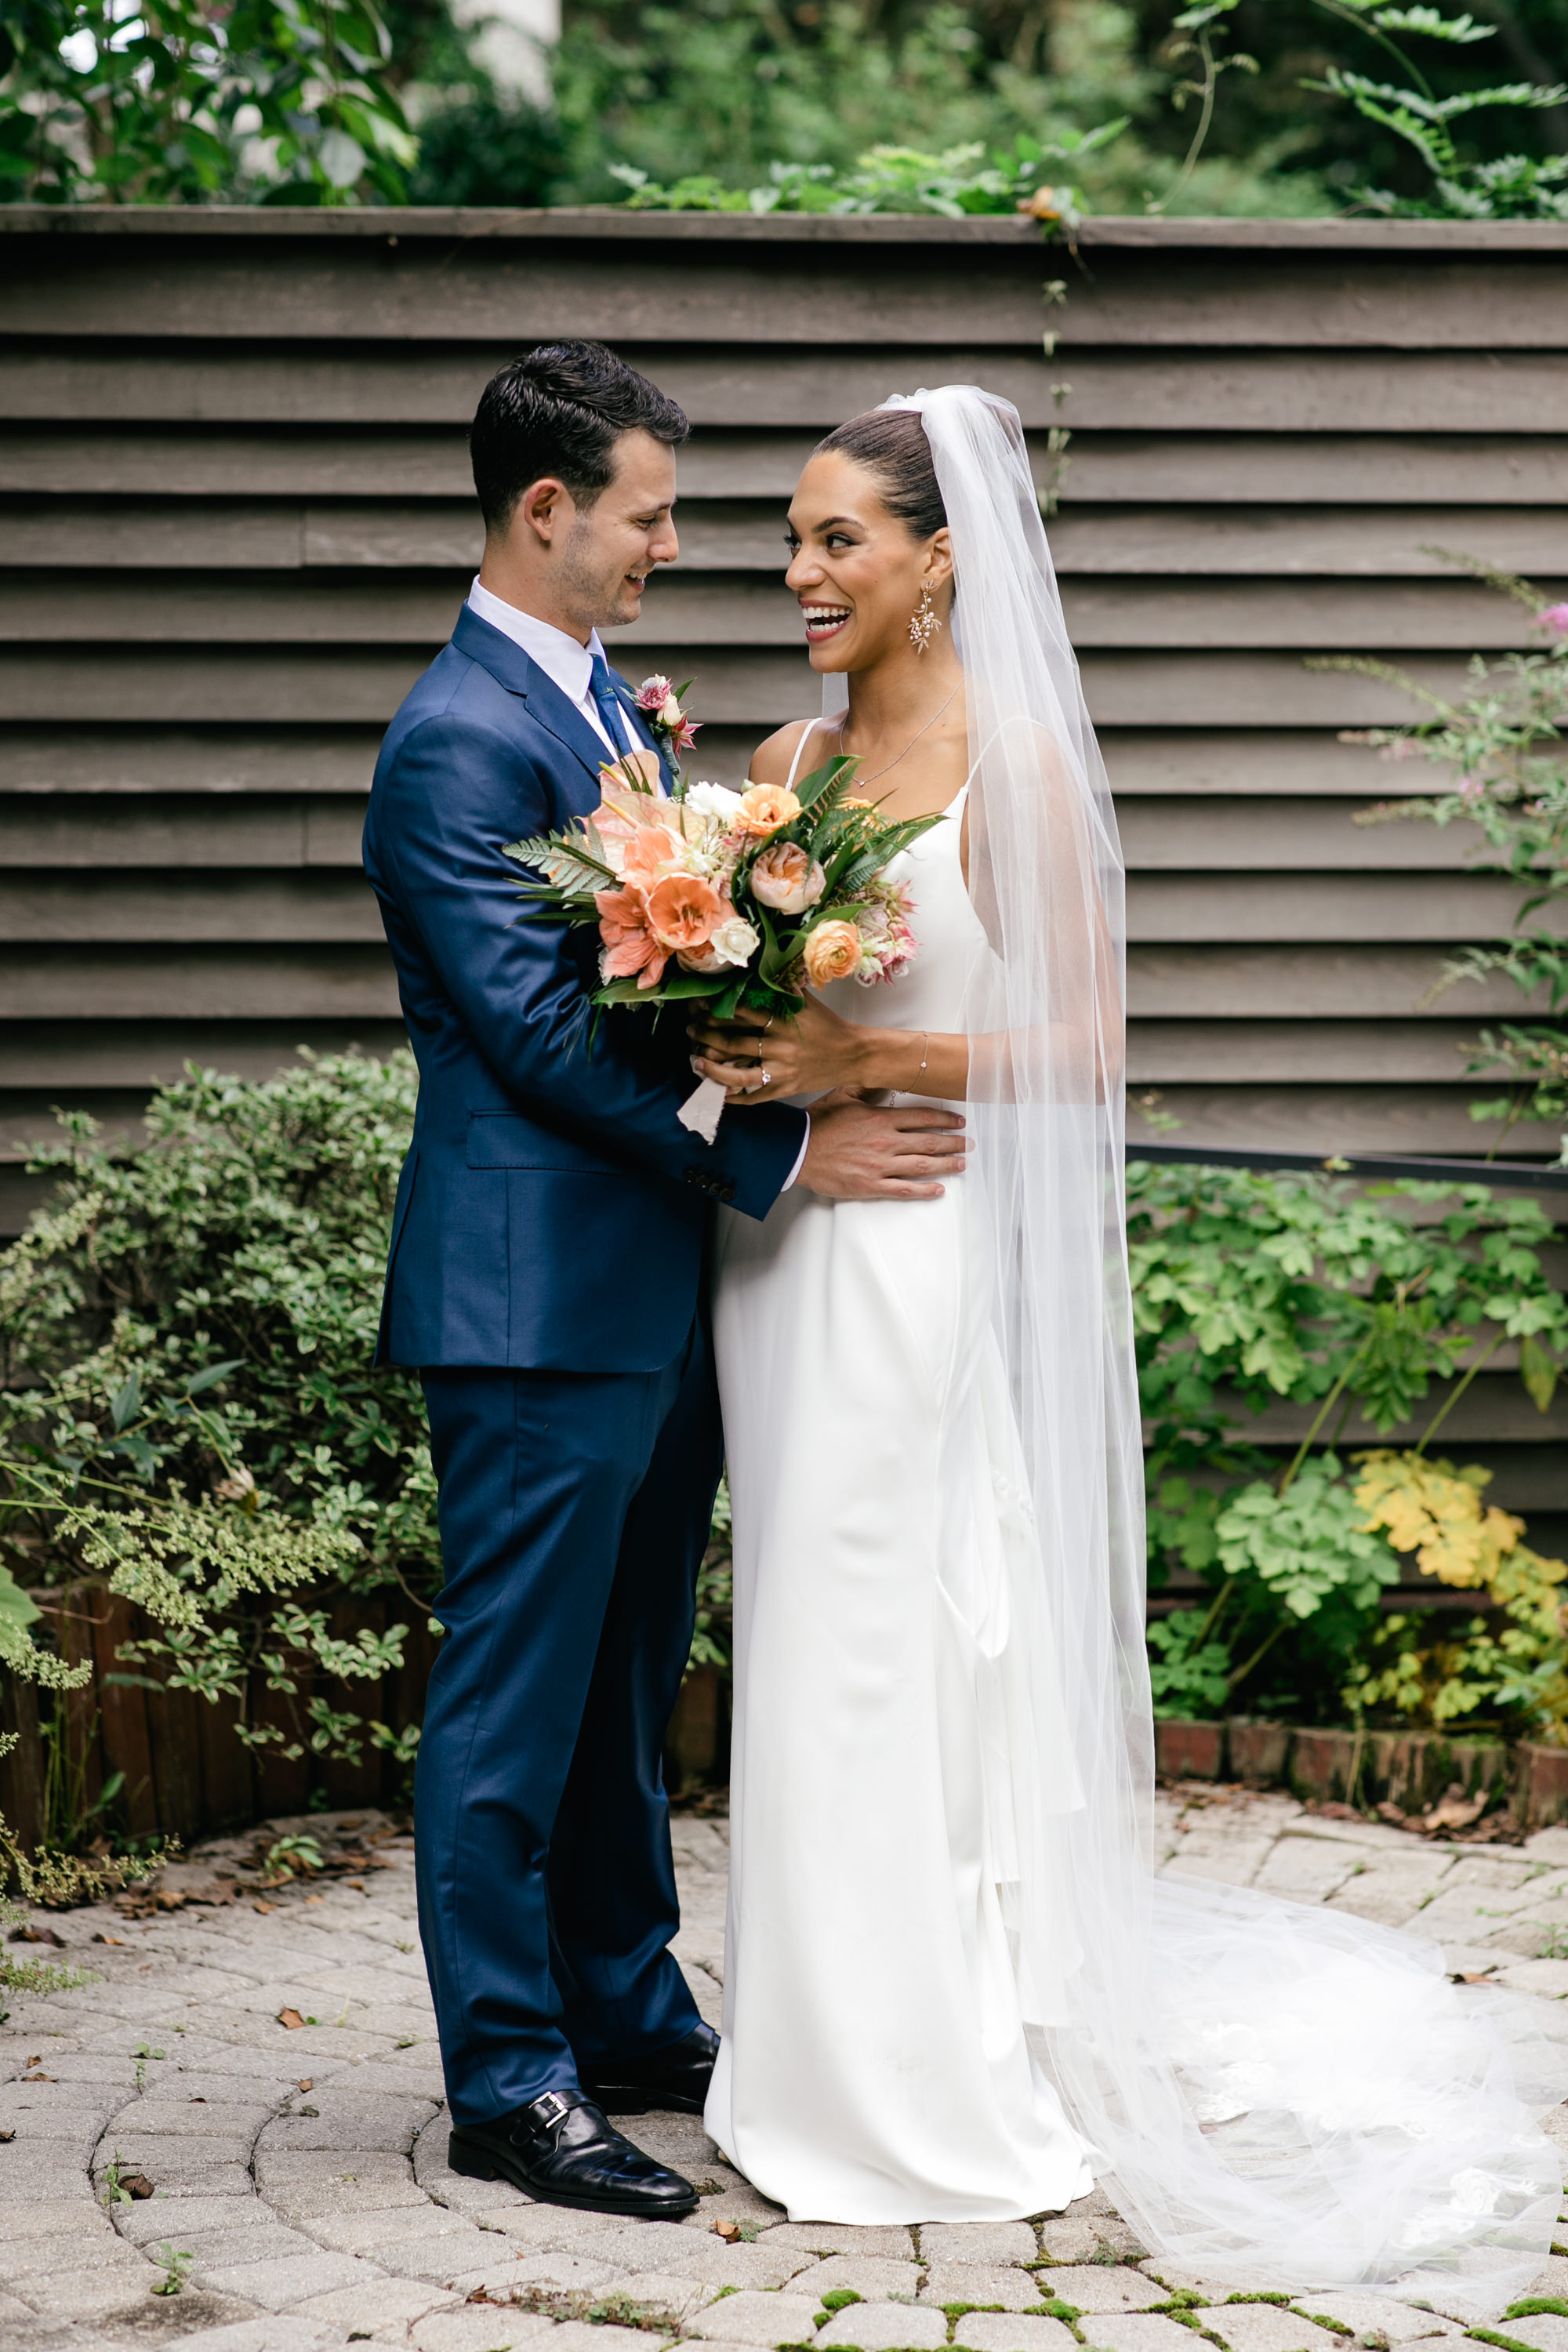 photography-wedding-weddings-natural-candid-dock 5 dc-washington dc-philadelphia-mixed race-editorial-modern-fine-art-019.JPG